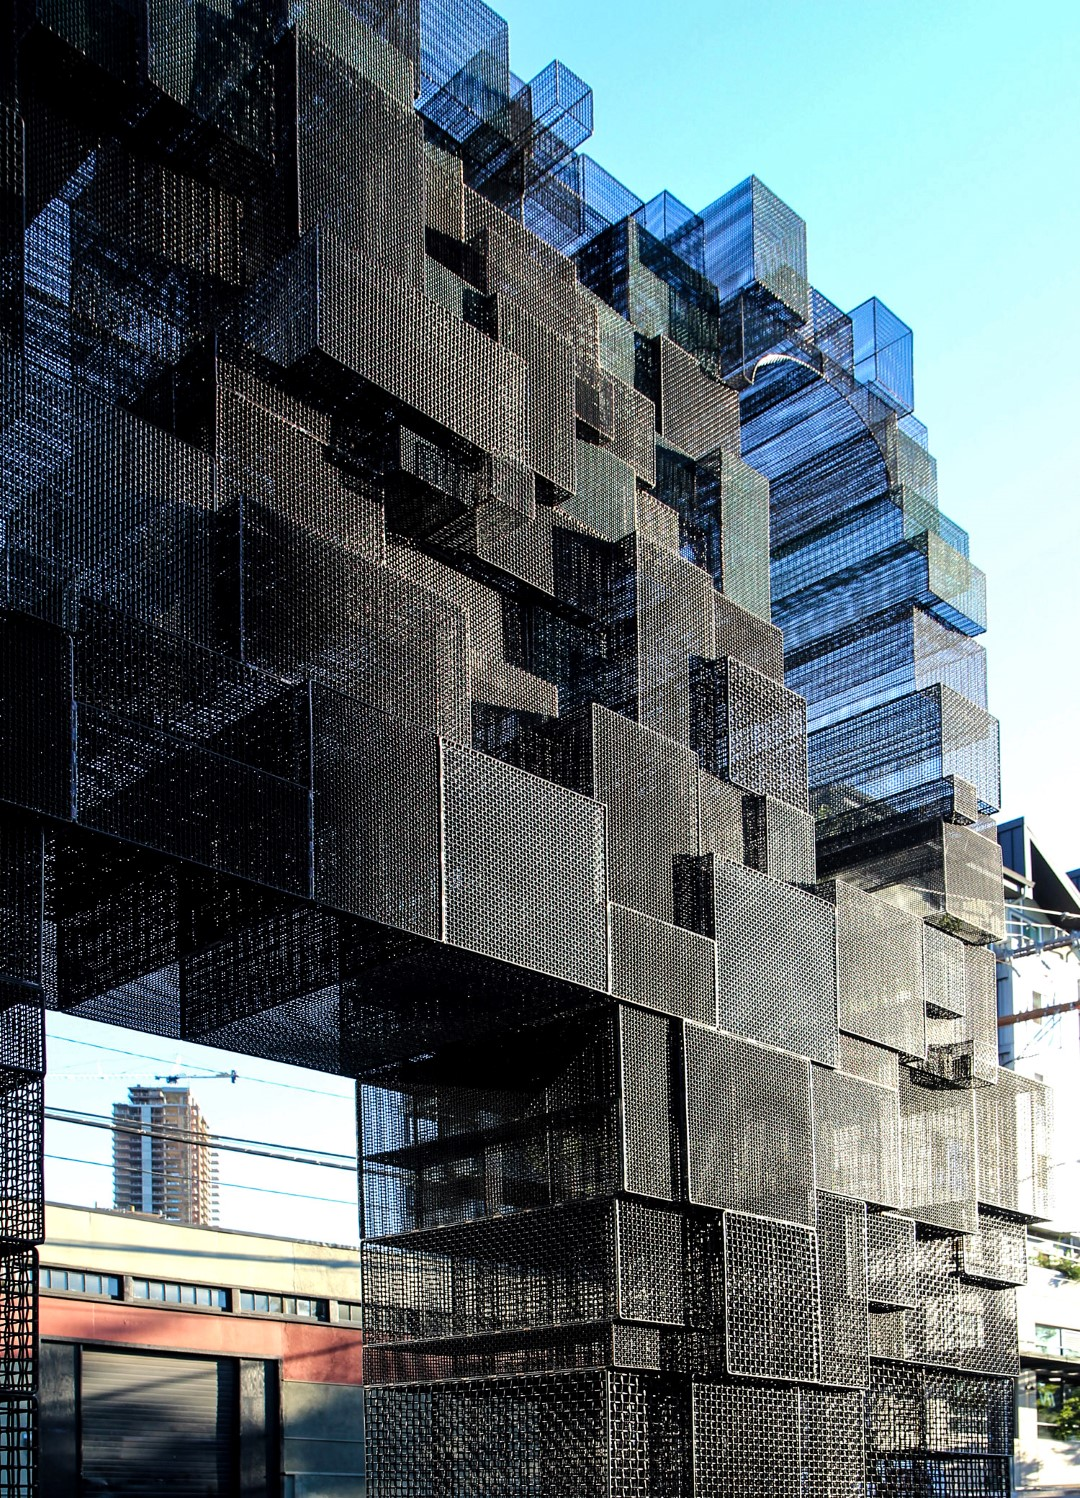 Nine different Banker Wire mesh patterns were used to introduce an urban street edge to the setback plaza where the sculpture sits.